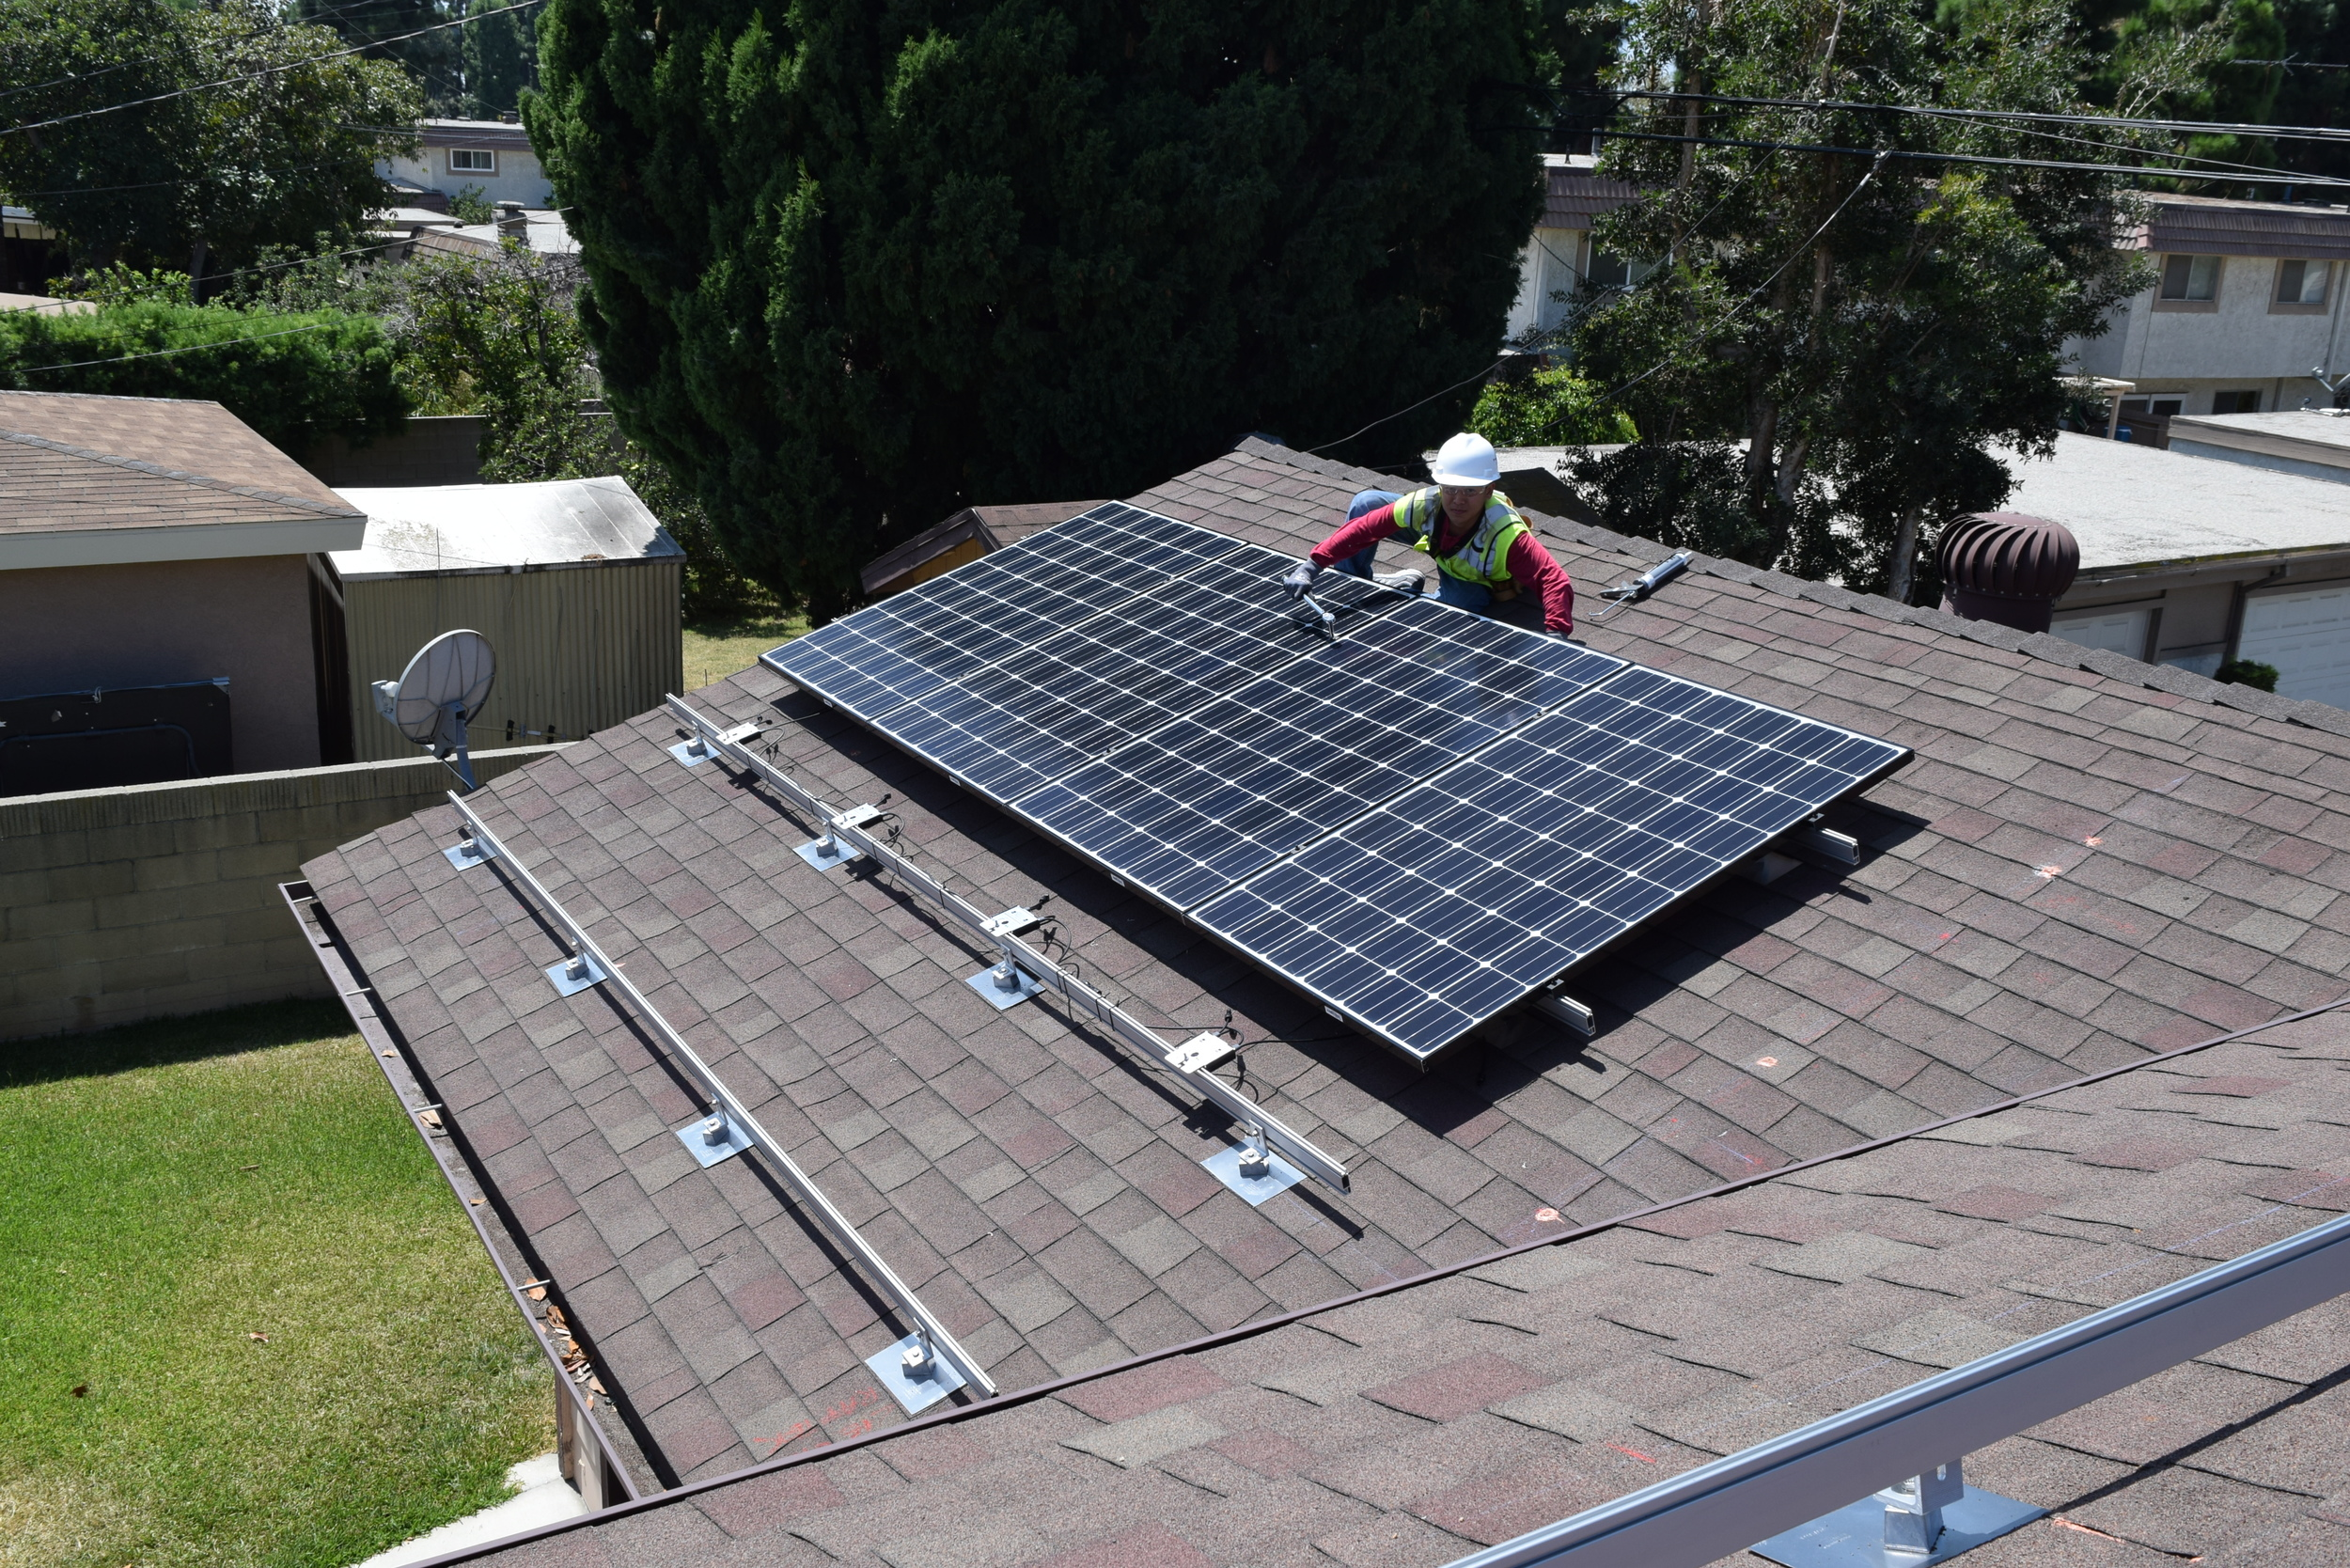 GARDEN GROVE, CA - 16 top-of-the-line PV modules total to 4.8 kWDC in Garden Grove, CA.  The system was commissioned in 2015.  The system is estimated to save the home owner over $65,000 in electricity bill over 25 years.